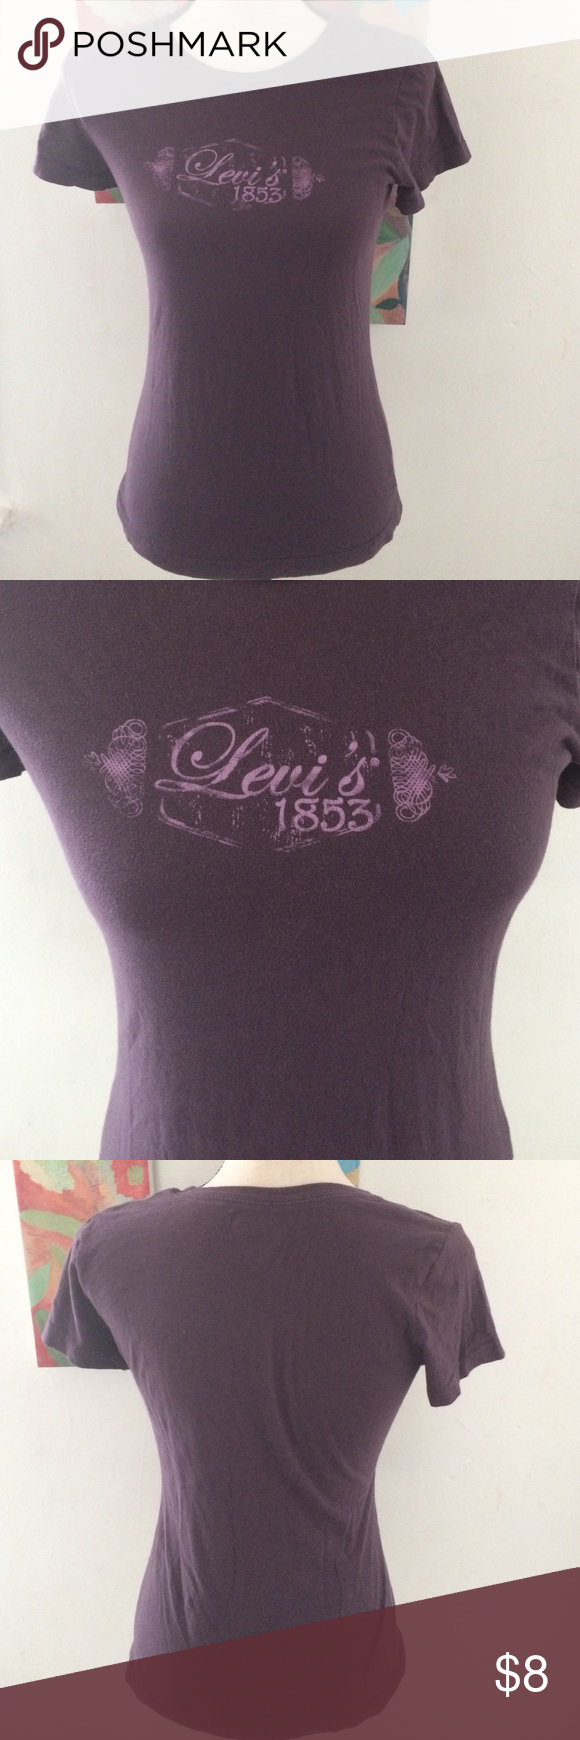 Levi's Short Sleeve Tee Women's purple Levi's t shirt. Size Small. Materials tag is cut out of the inside. I think it was 100% Cotton. Levi's Tops Tees - Short Sleeve